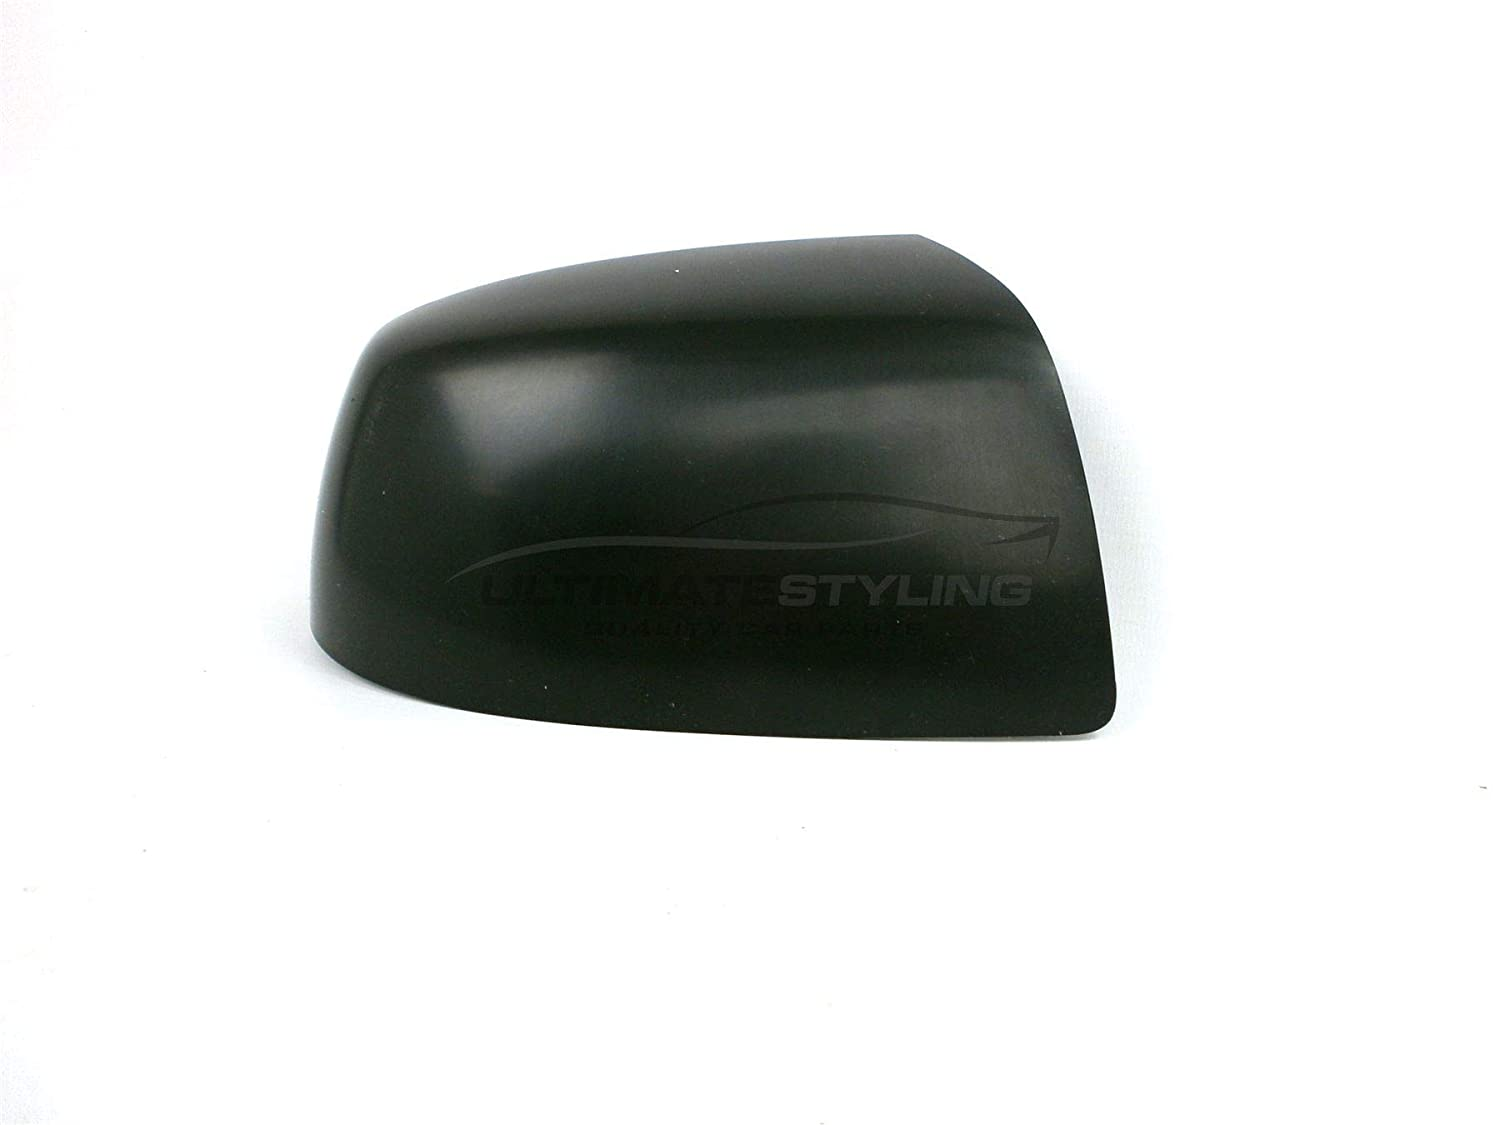 Ultimate Styling Aftermarket Replacement Wing Mirror Cover Cap Colour Of Cover Black Smooth Finish For Drivers Side Right Hand Side RH